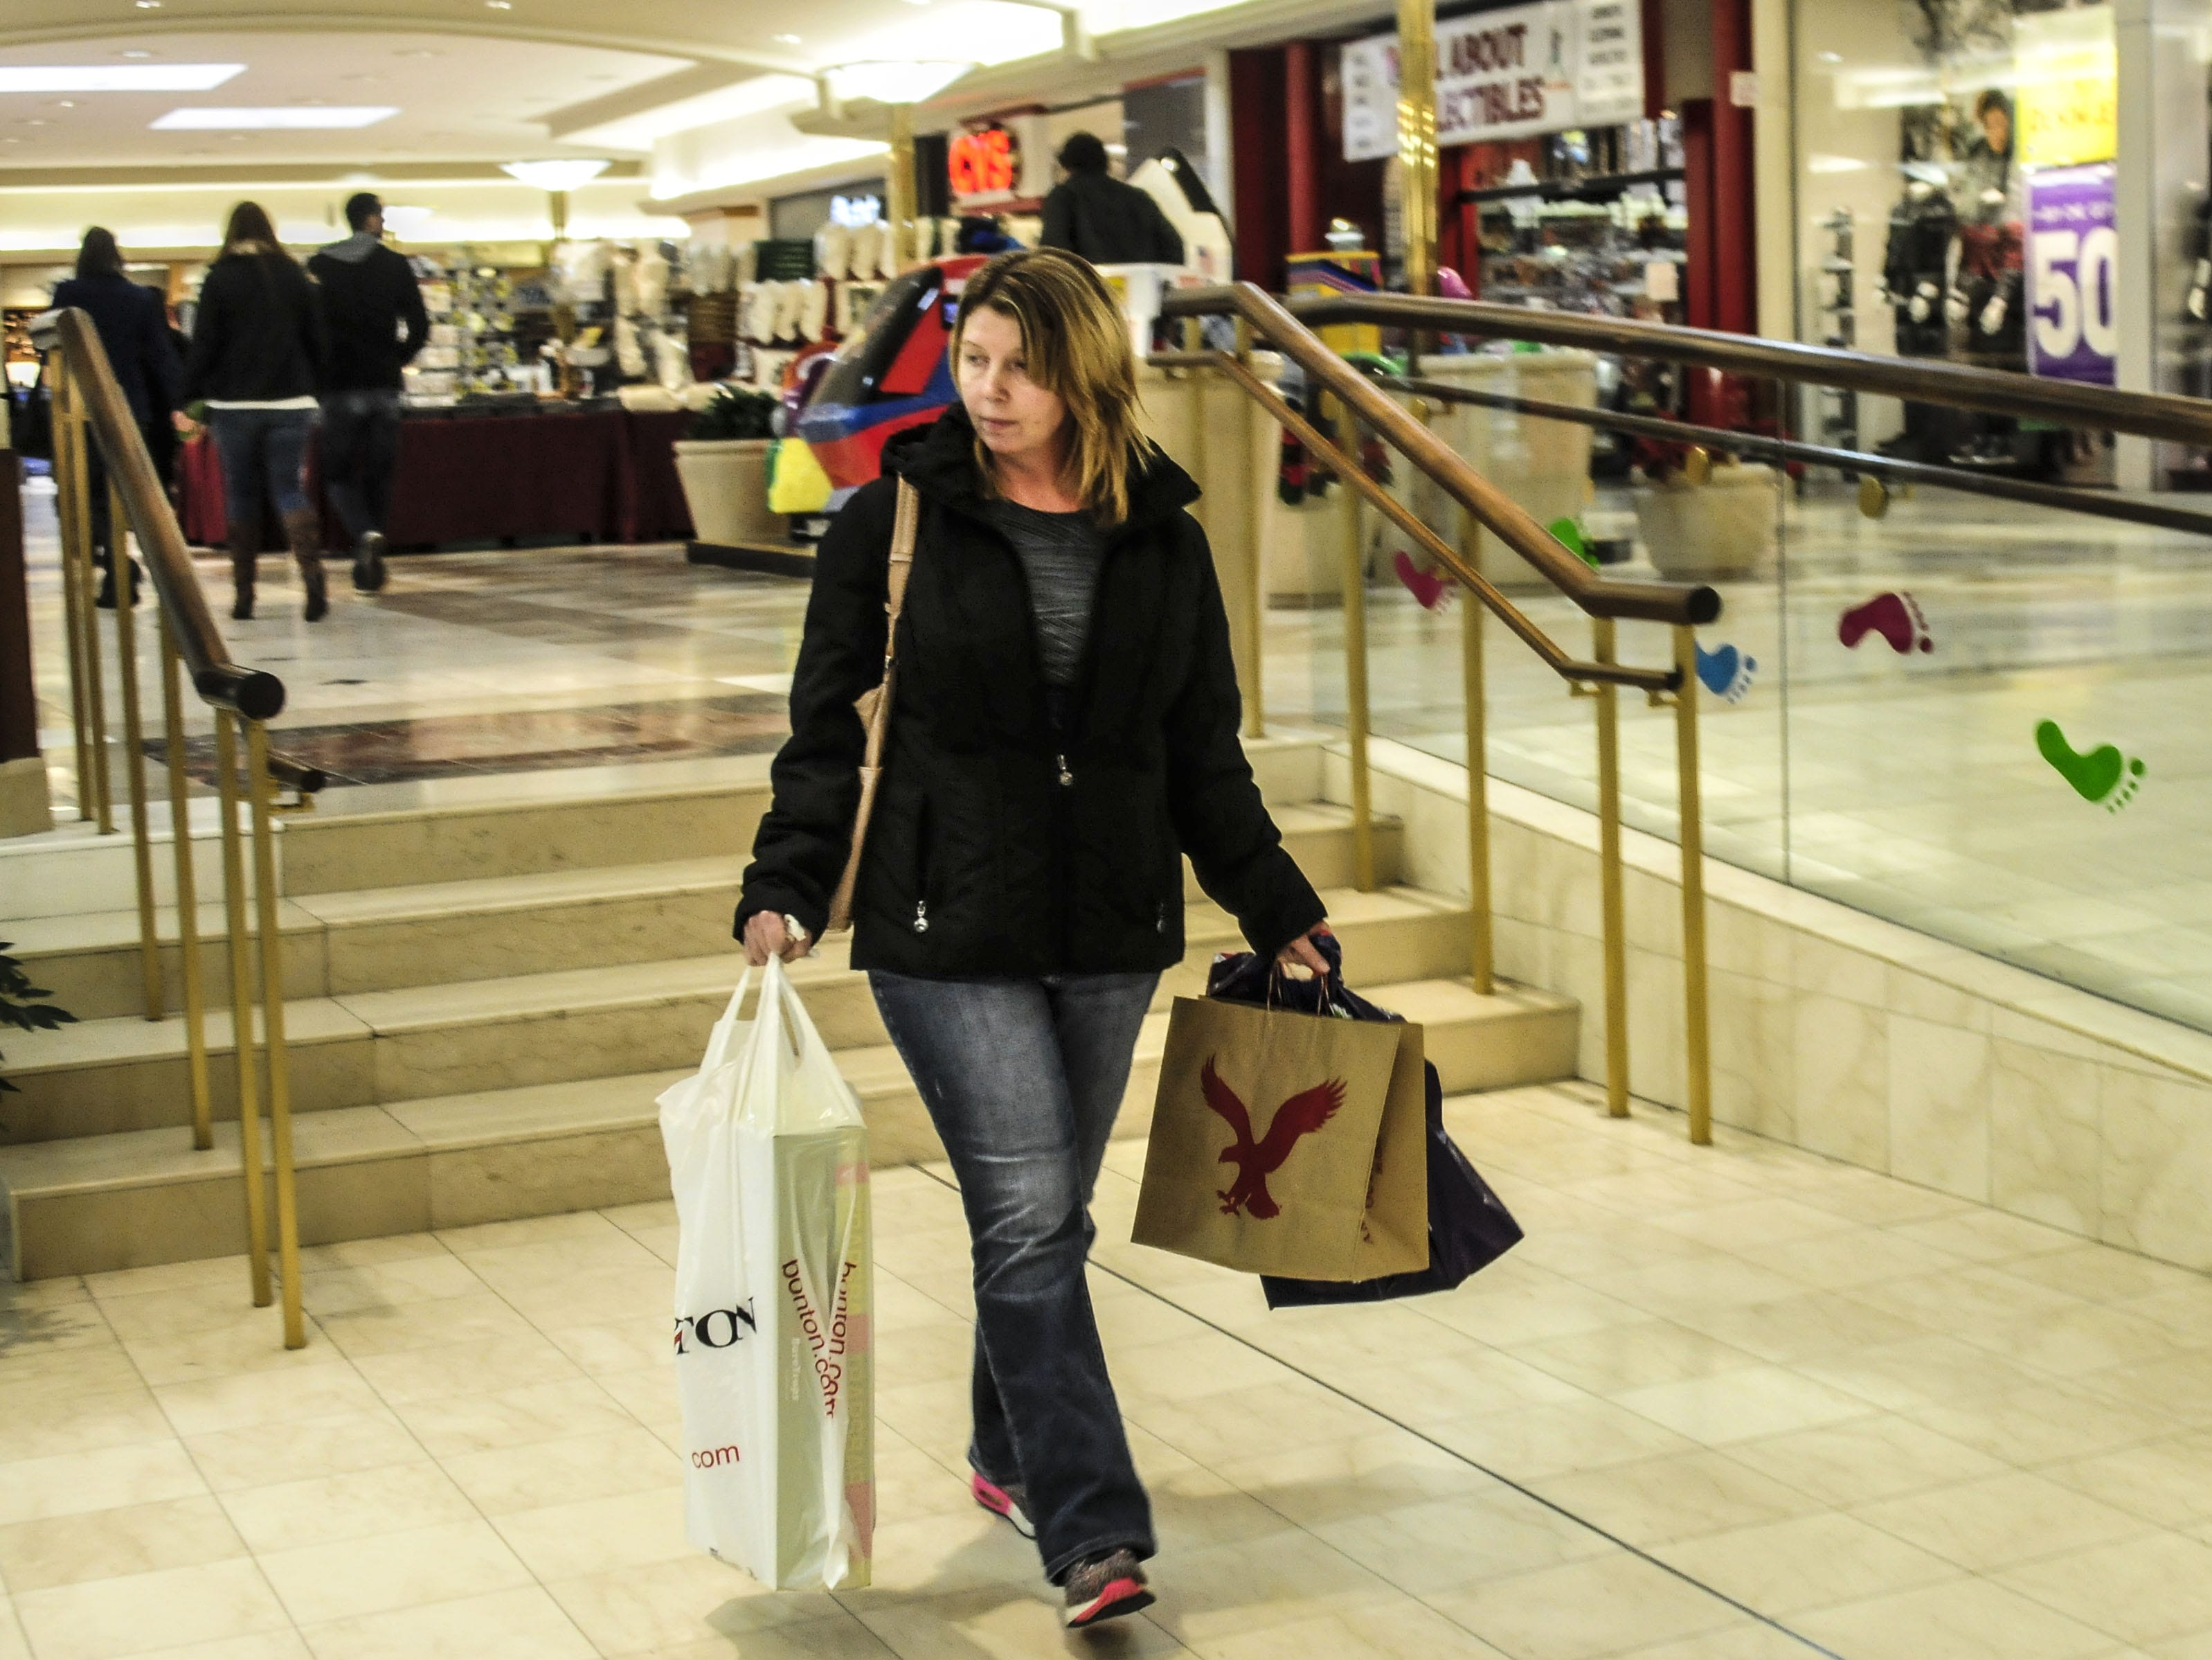 Laurie Lasky, of Conklin, shops at the Oakdale Mall in Johnson City on Dec. 26, 2013. She said she waits until after Christmas to buy some items. That year, Lasky went to the mall at 7:30 a.m. looking for a post-Christmas deal on dress boots.